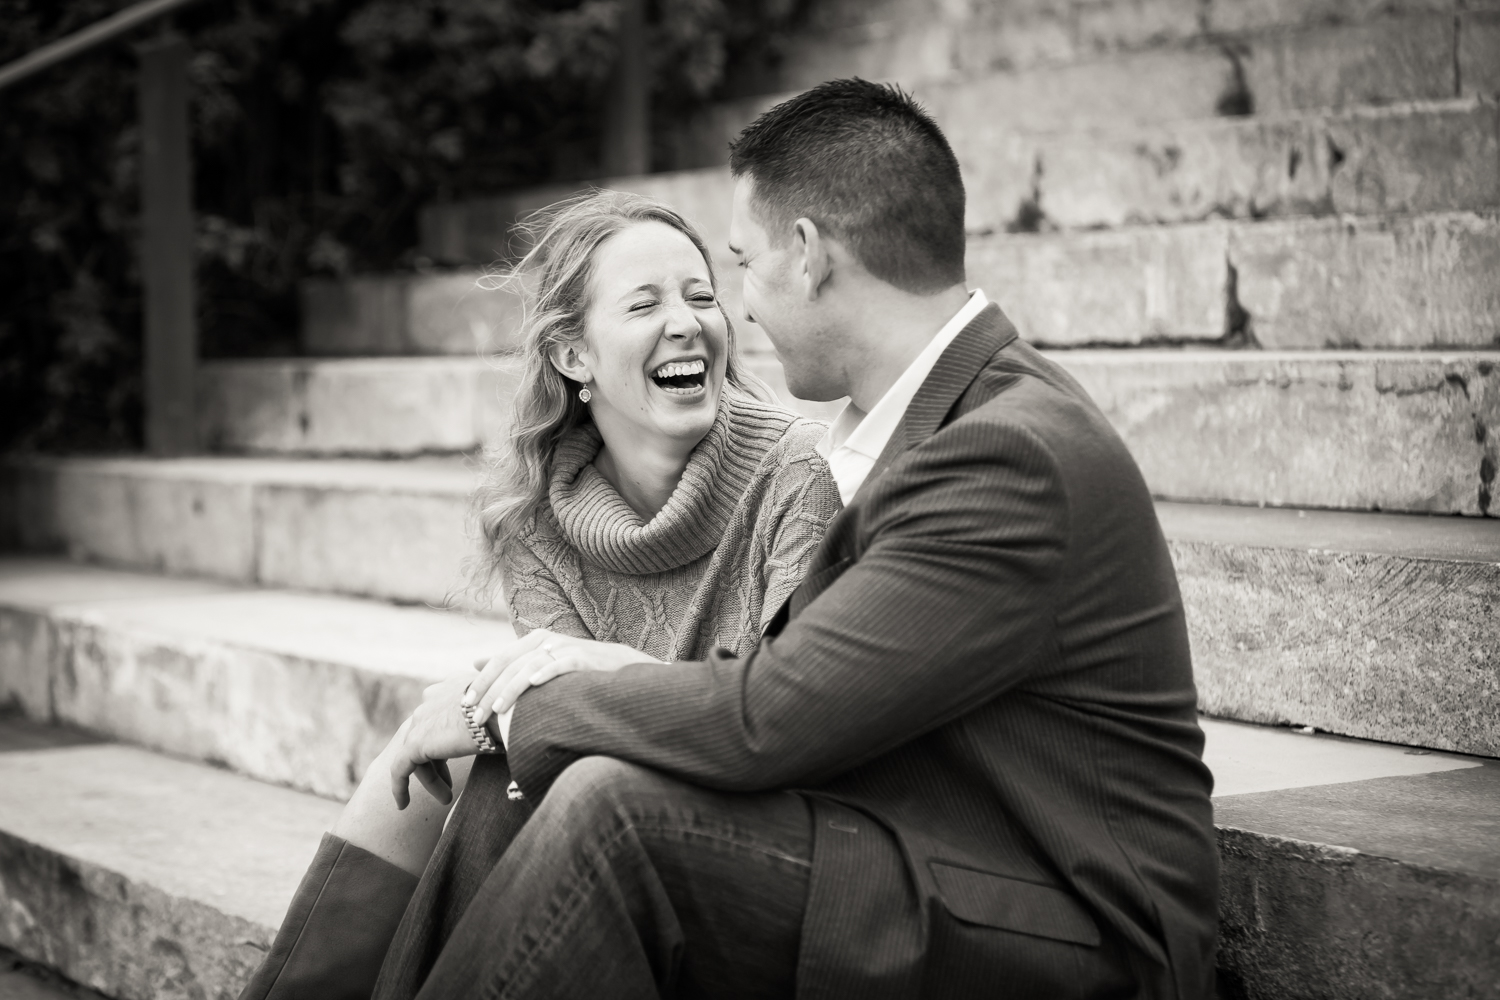 Black and white photo of woman laughing with man